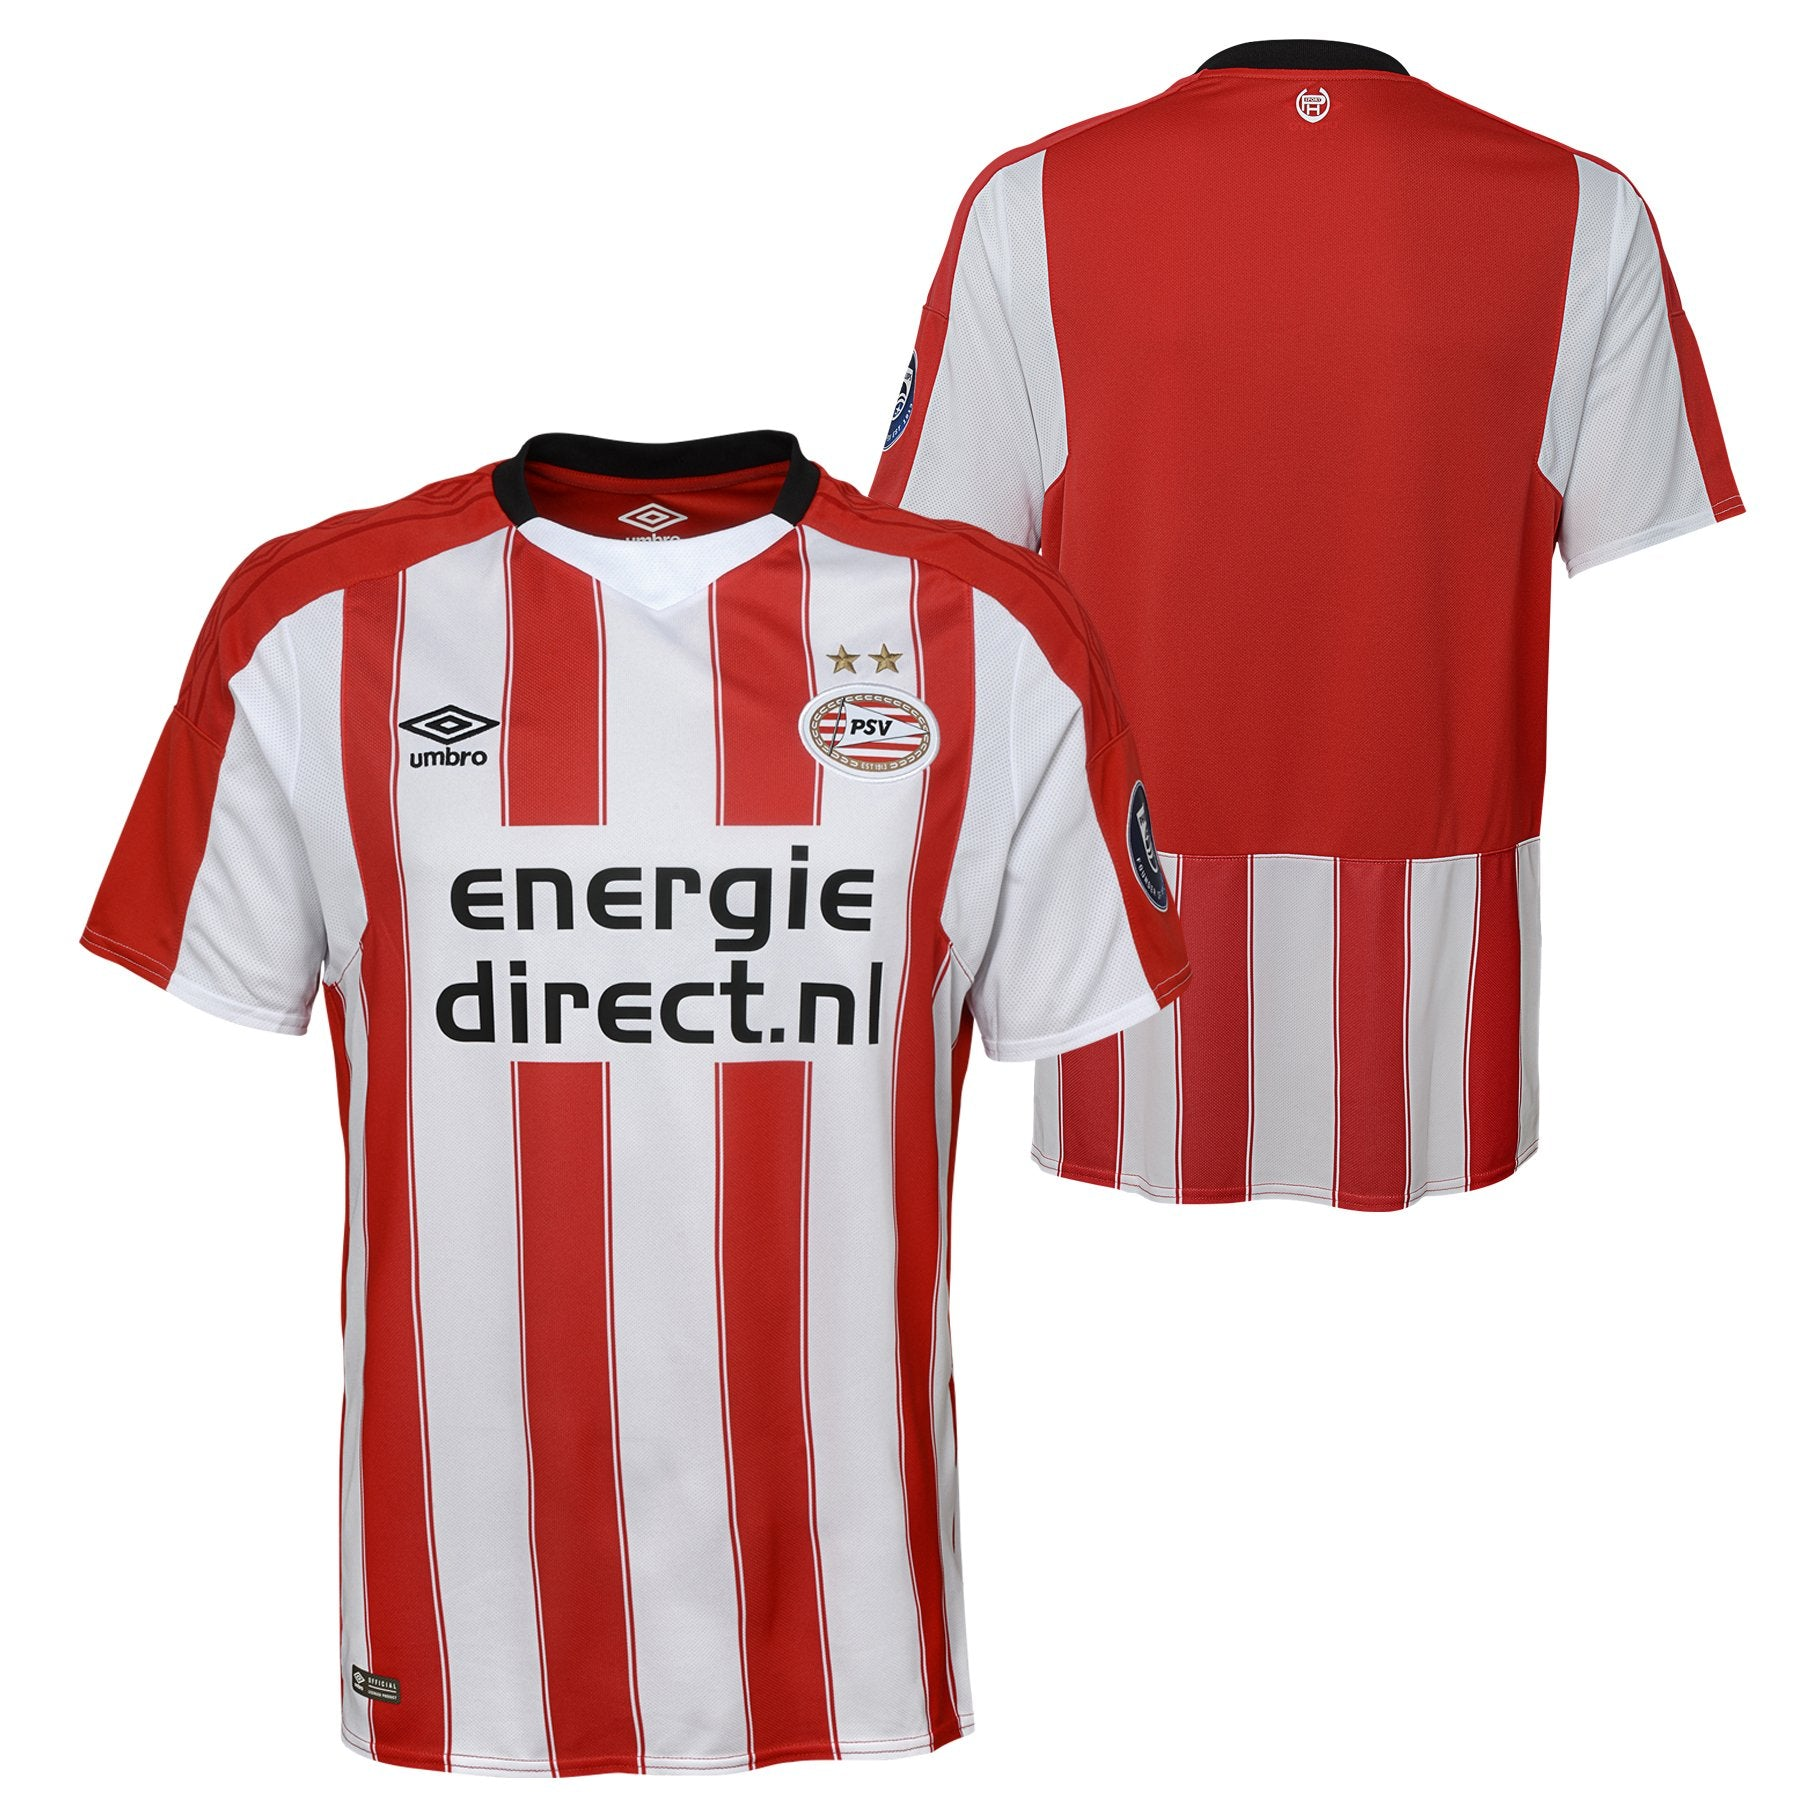 Umbro - PSV Home Jersey